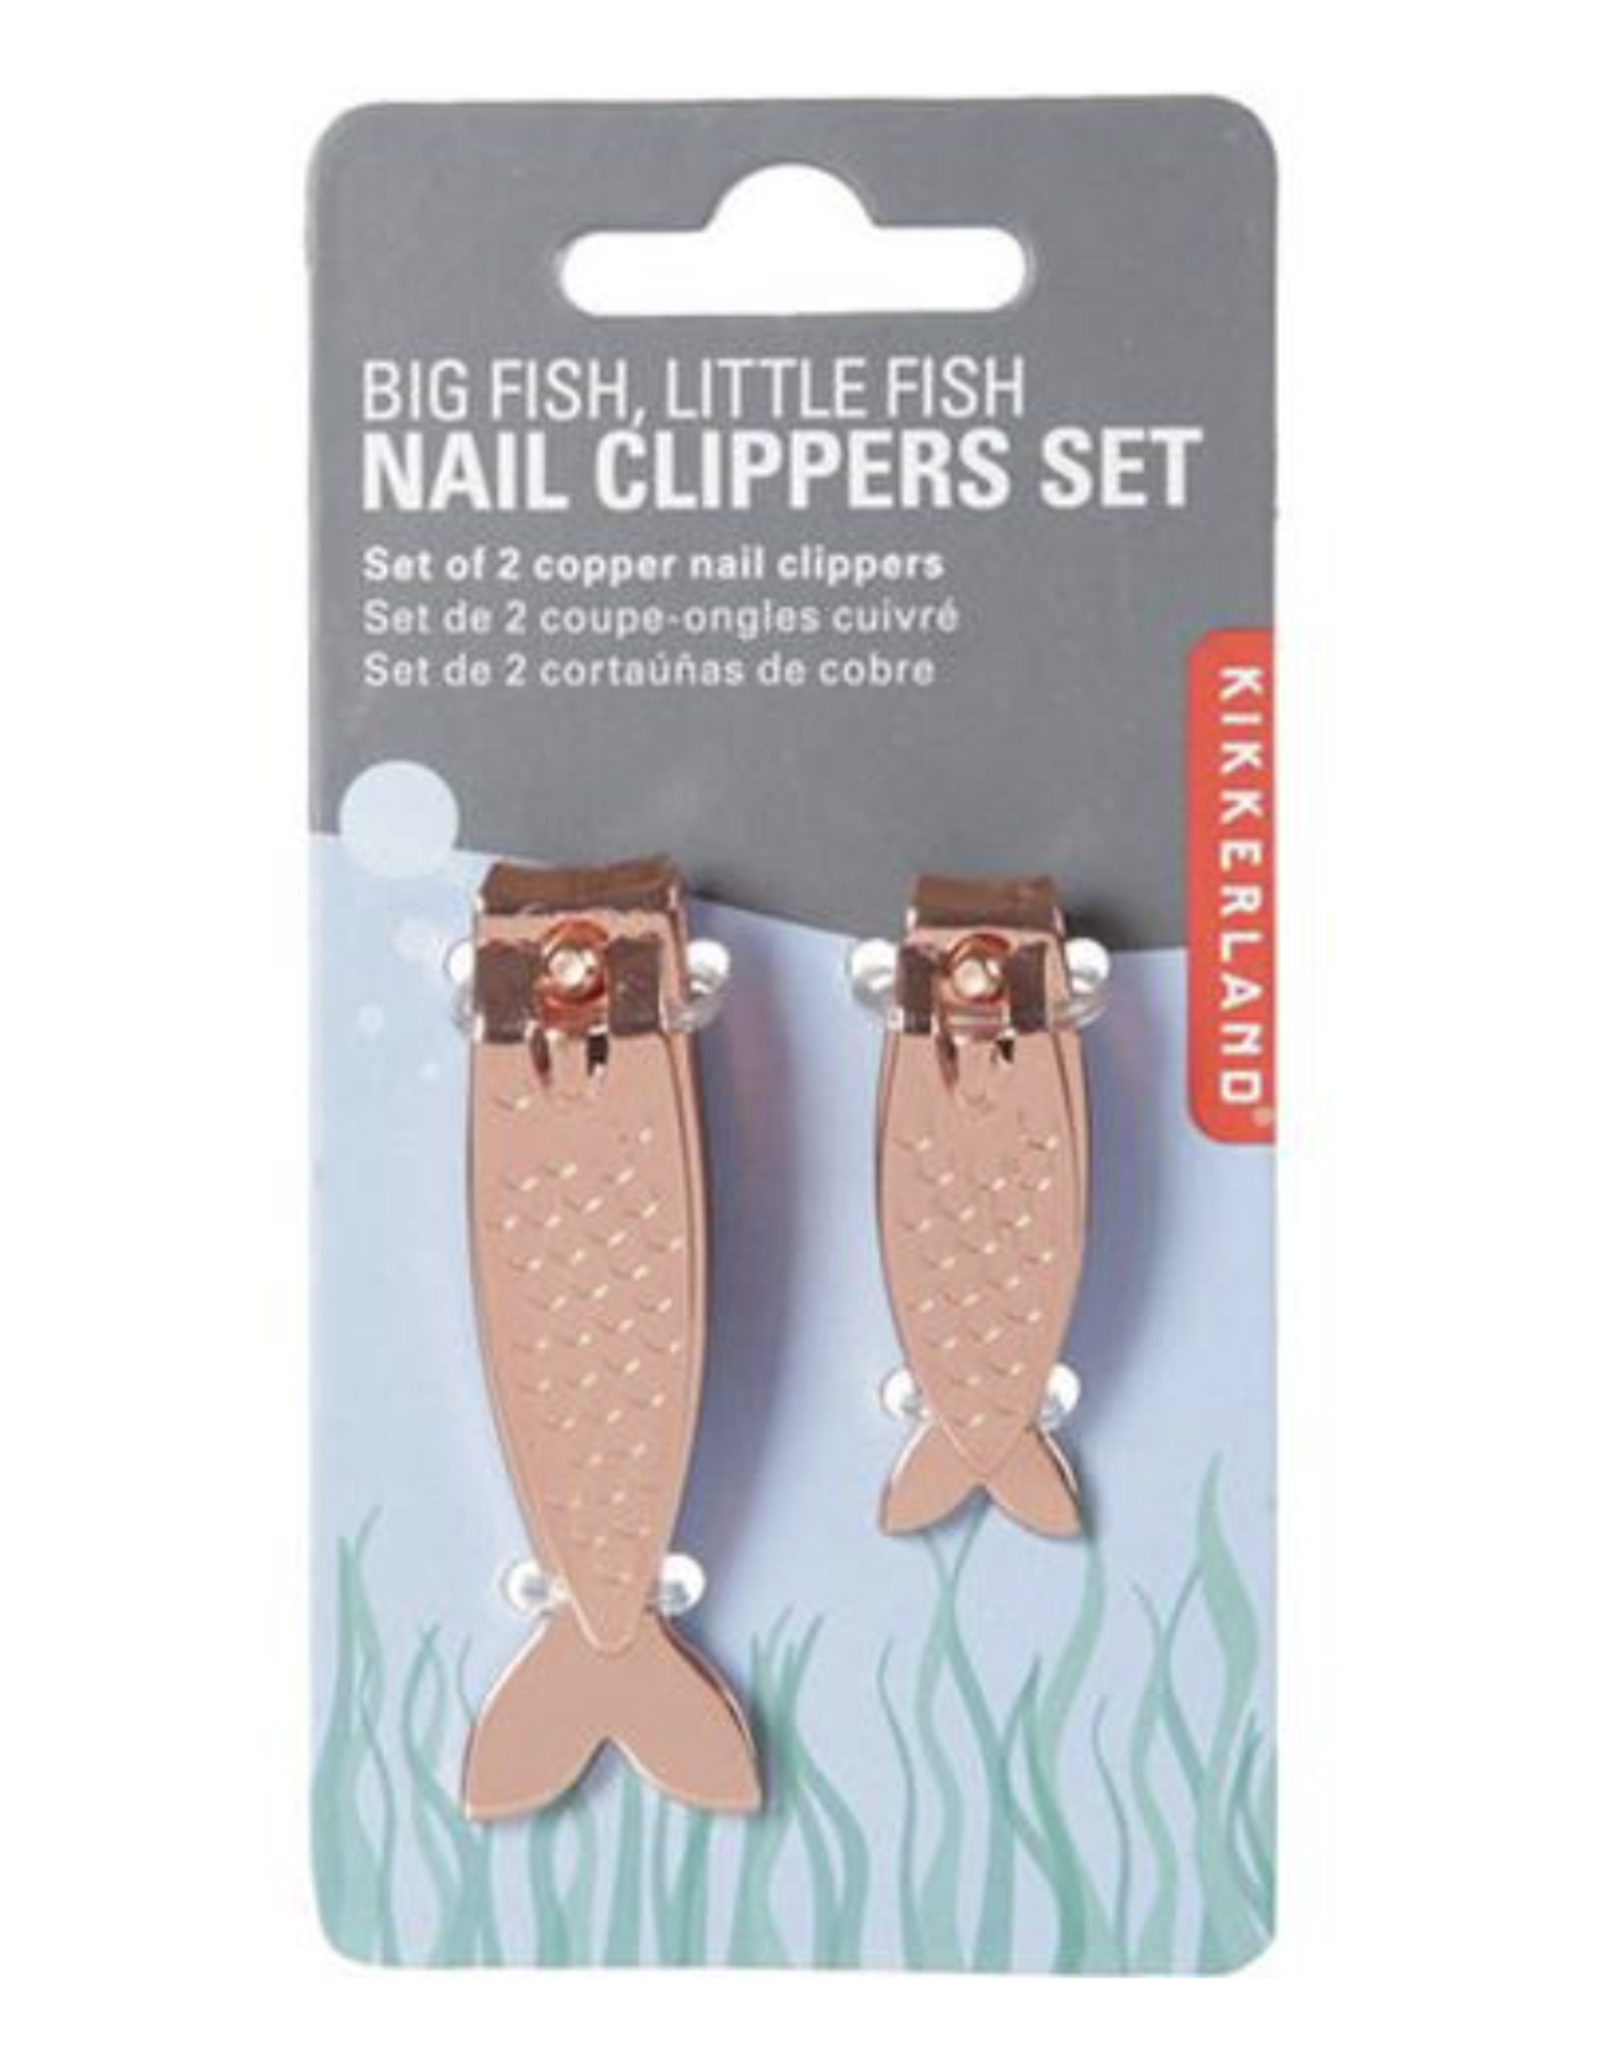 Fish Nail Clippers s/2